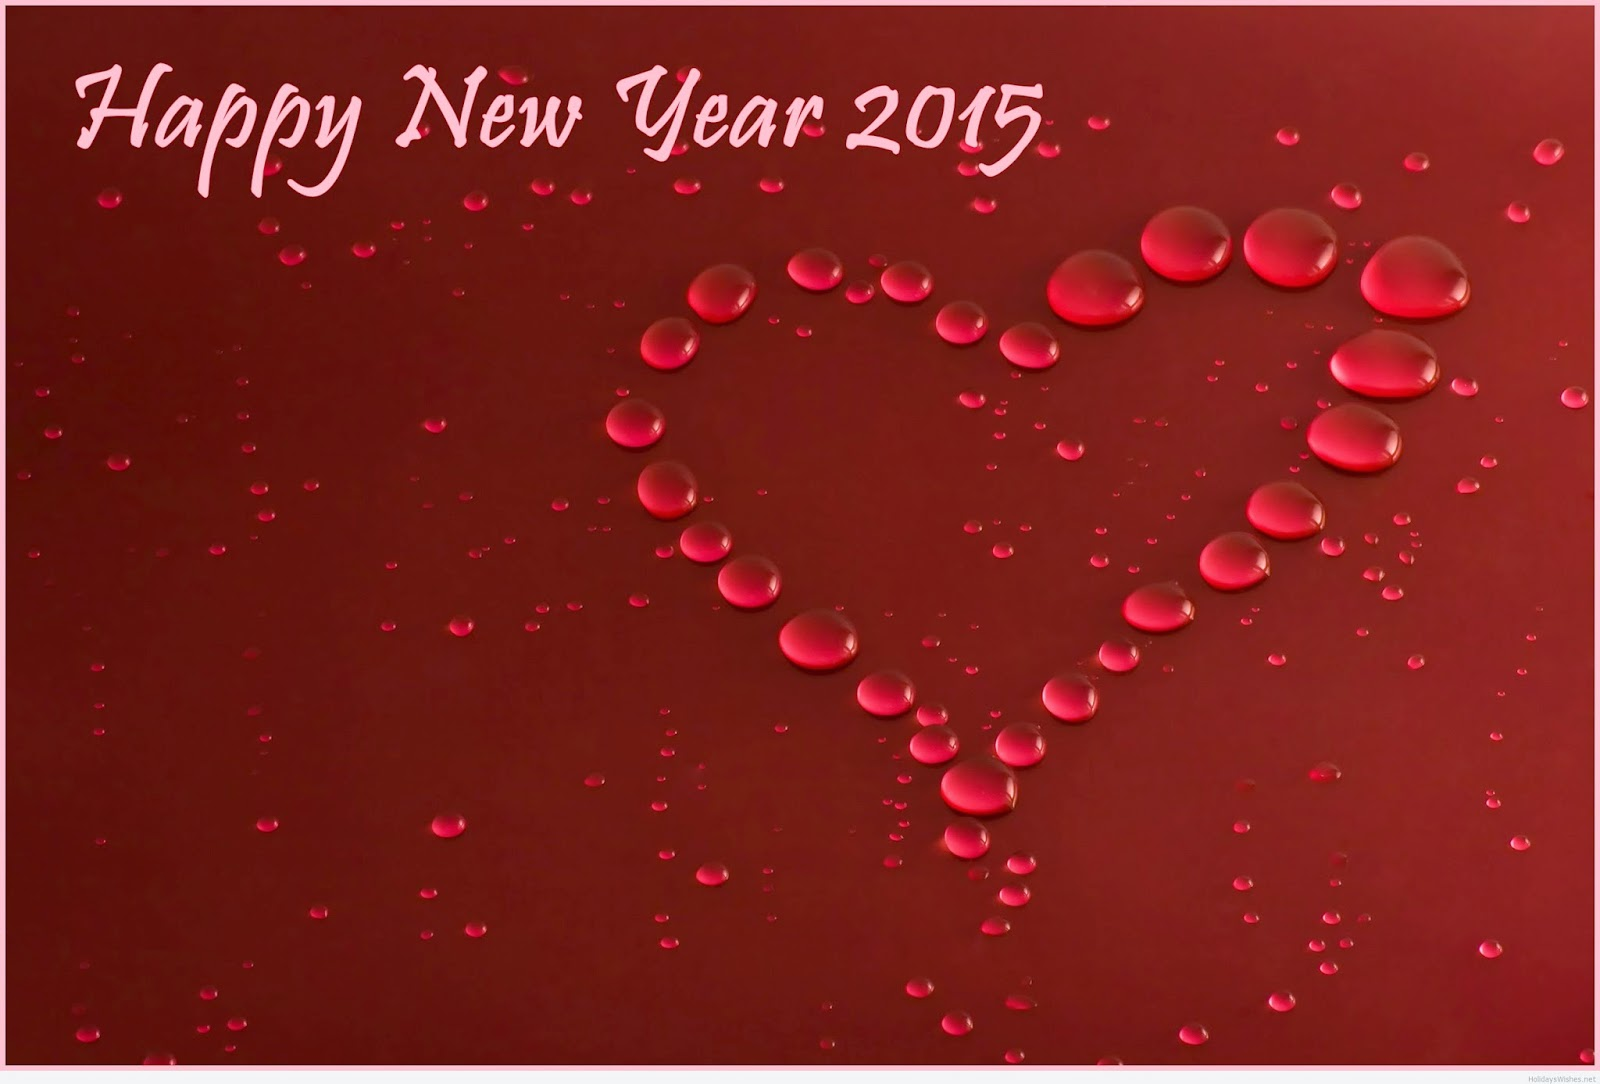 Happy New Year 2015 - eCARDS HD Cards